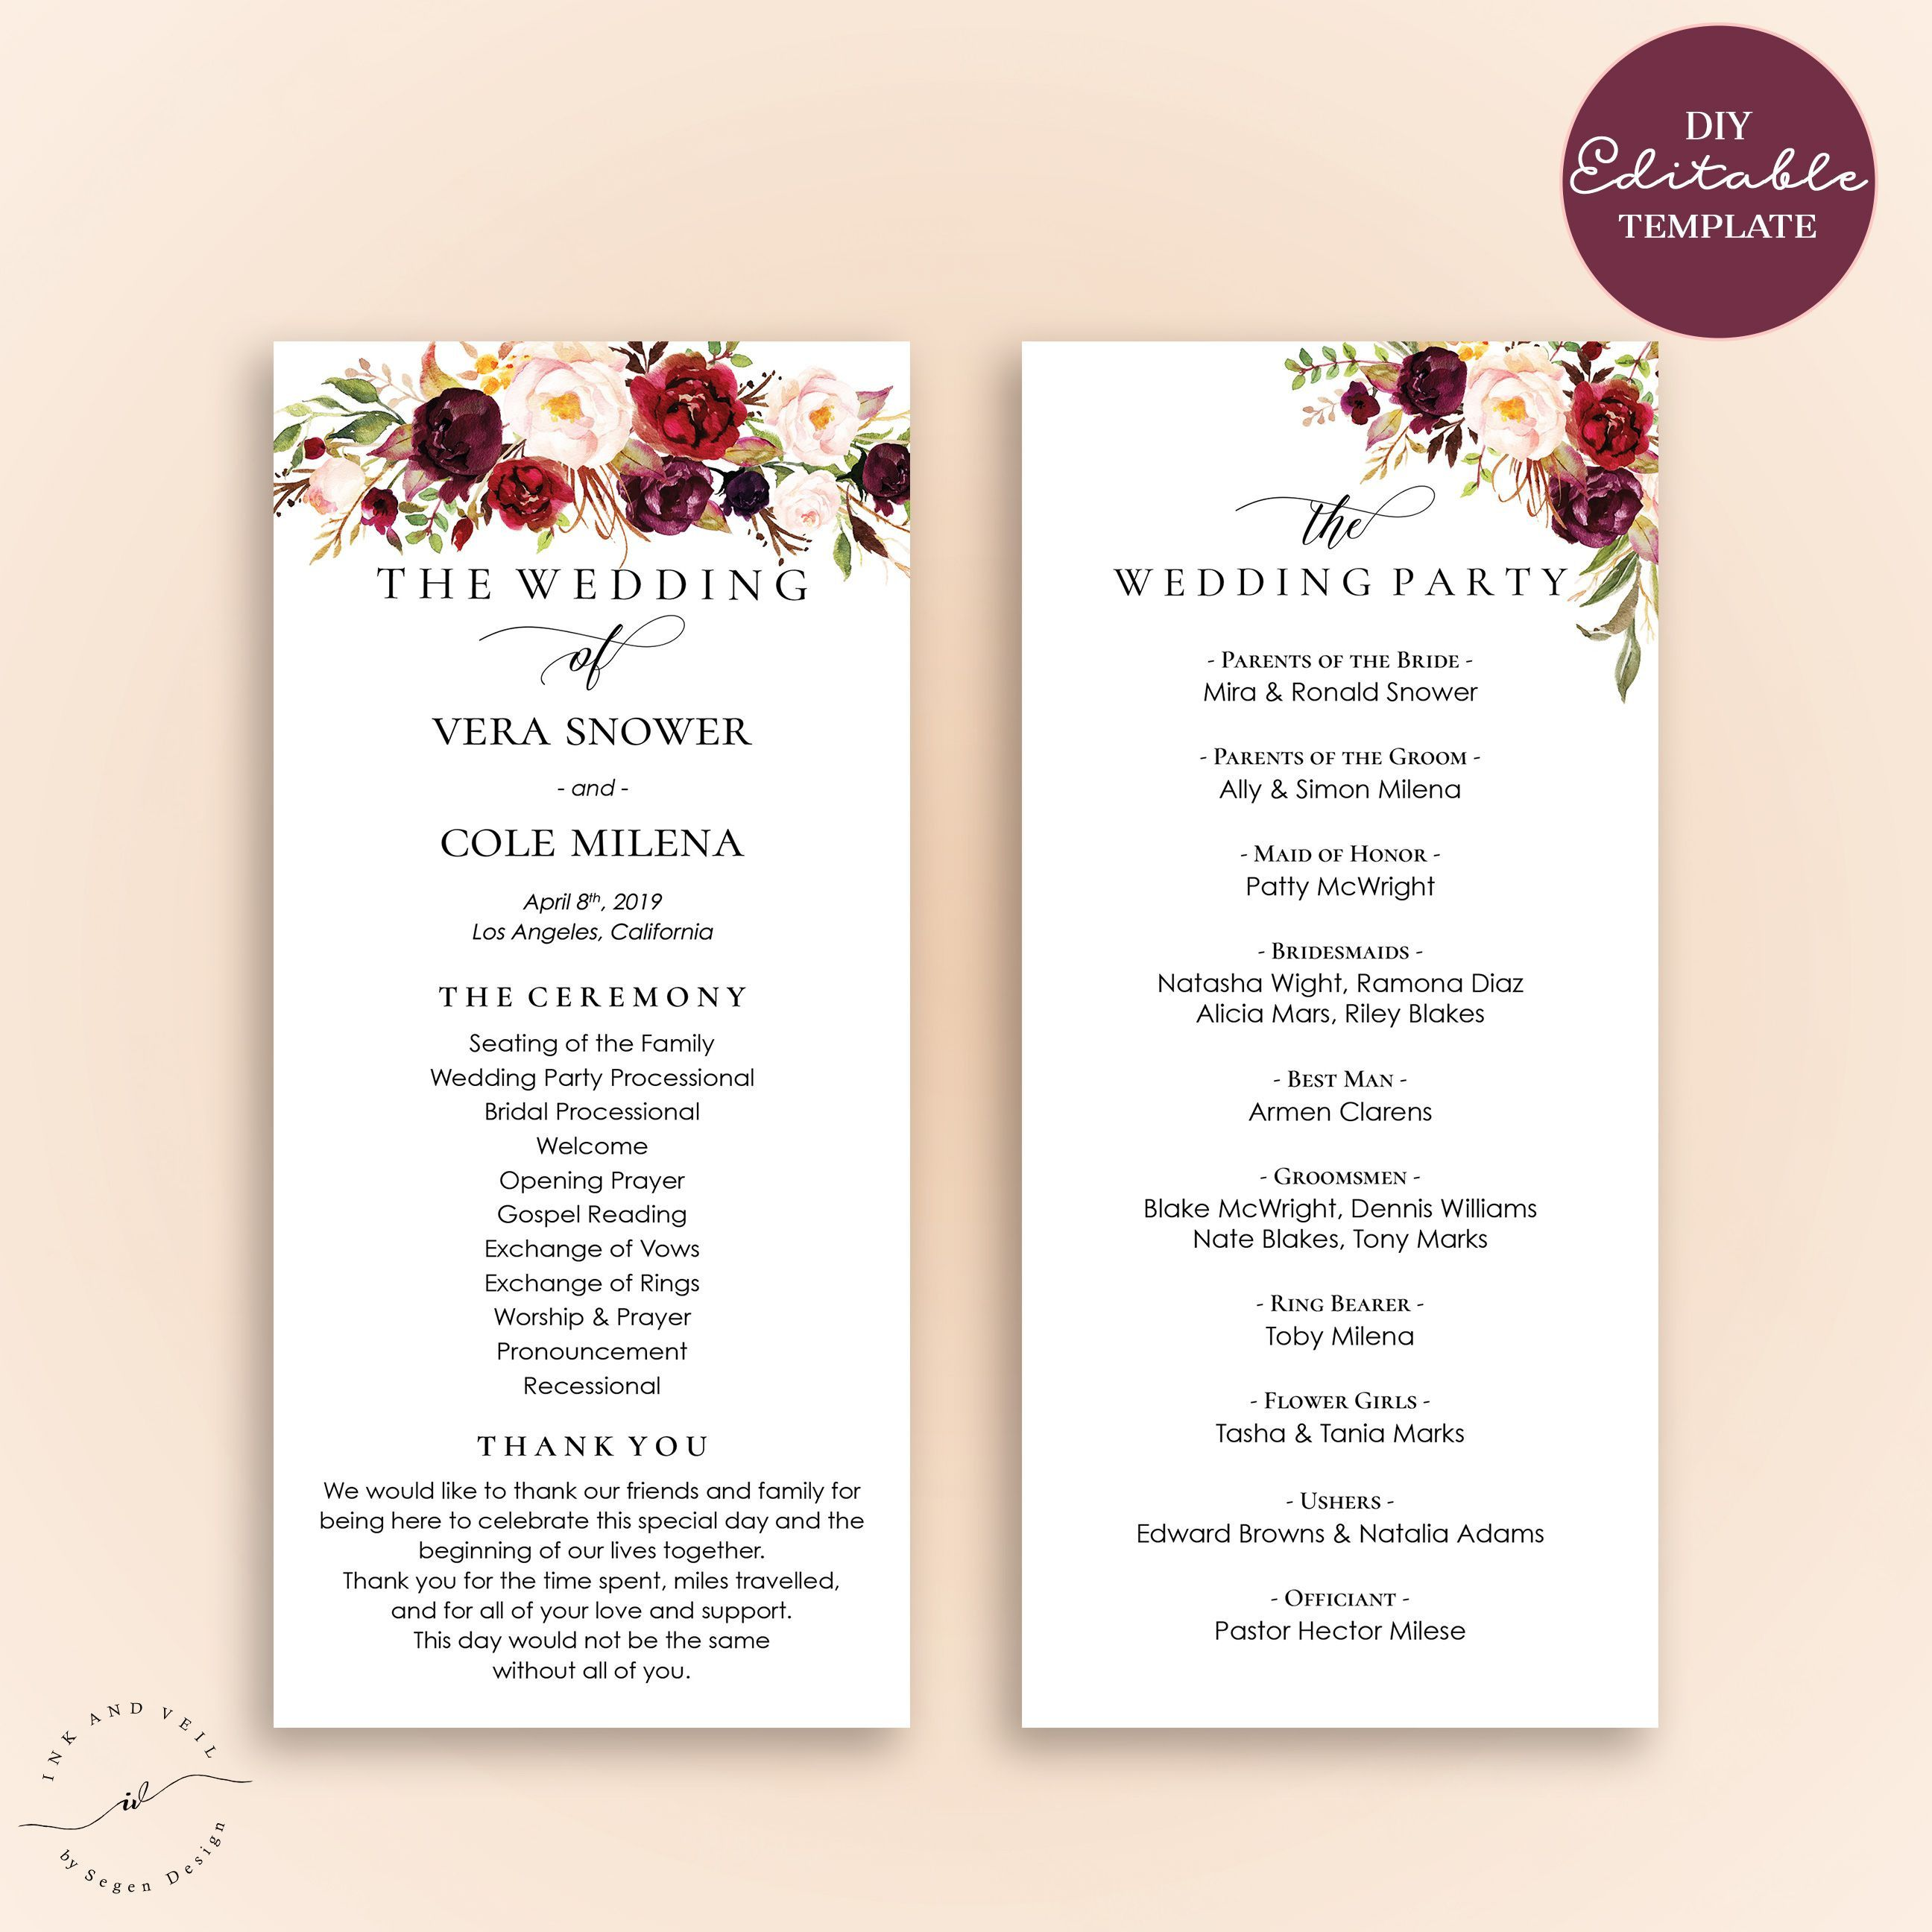 007 Fantastic Wedding Reception Program Template Example  Templates Layout Free Download Ceremony AndFull